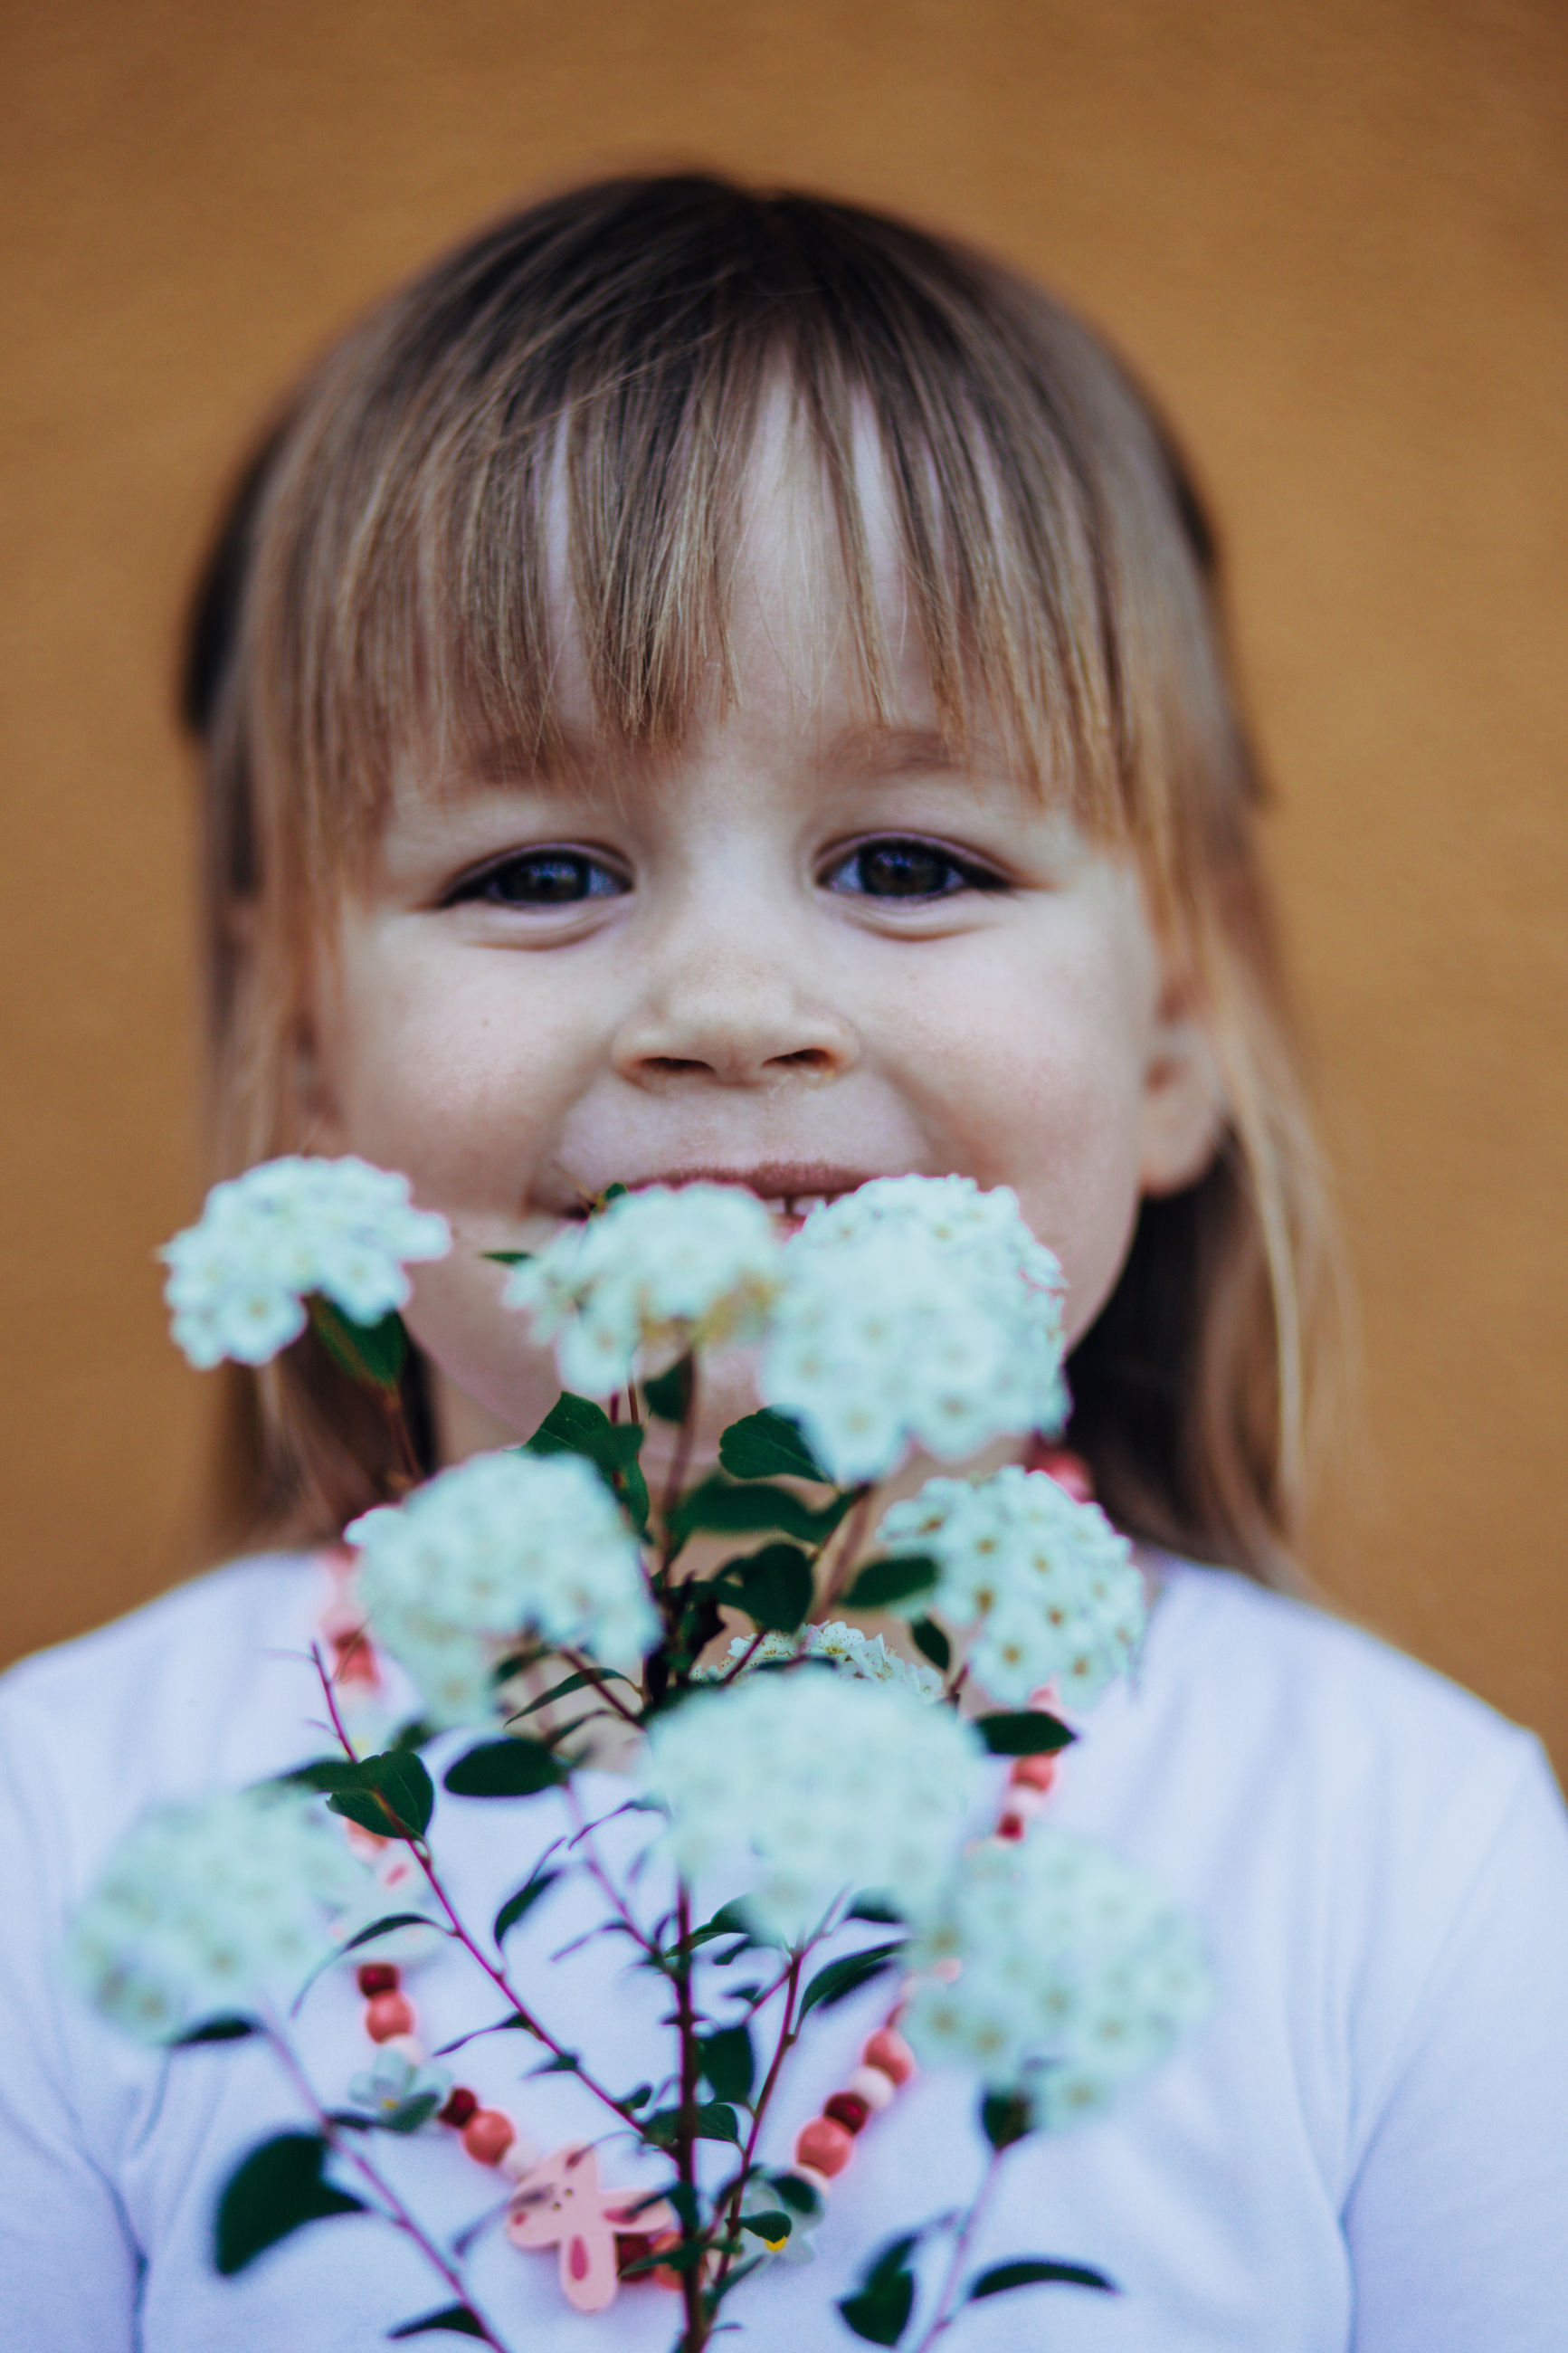 childhood, innocence, one person, cute, portrait, food and drink, indoors, real people, toddler, looking at camera, front view, eating, headshot, close-up, food, freshness, healthy eating, day